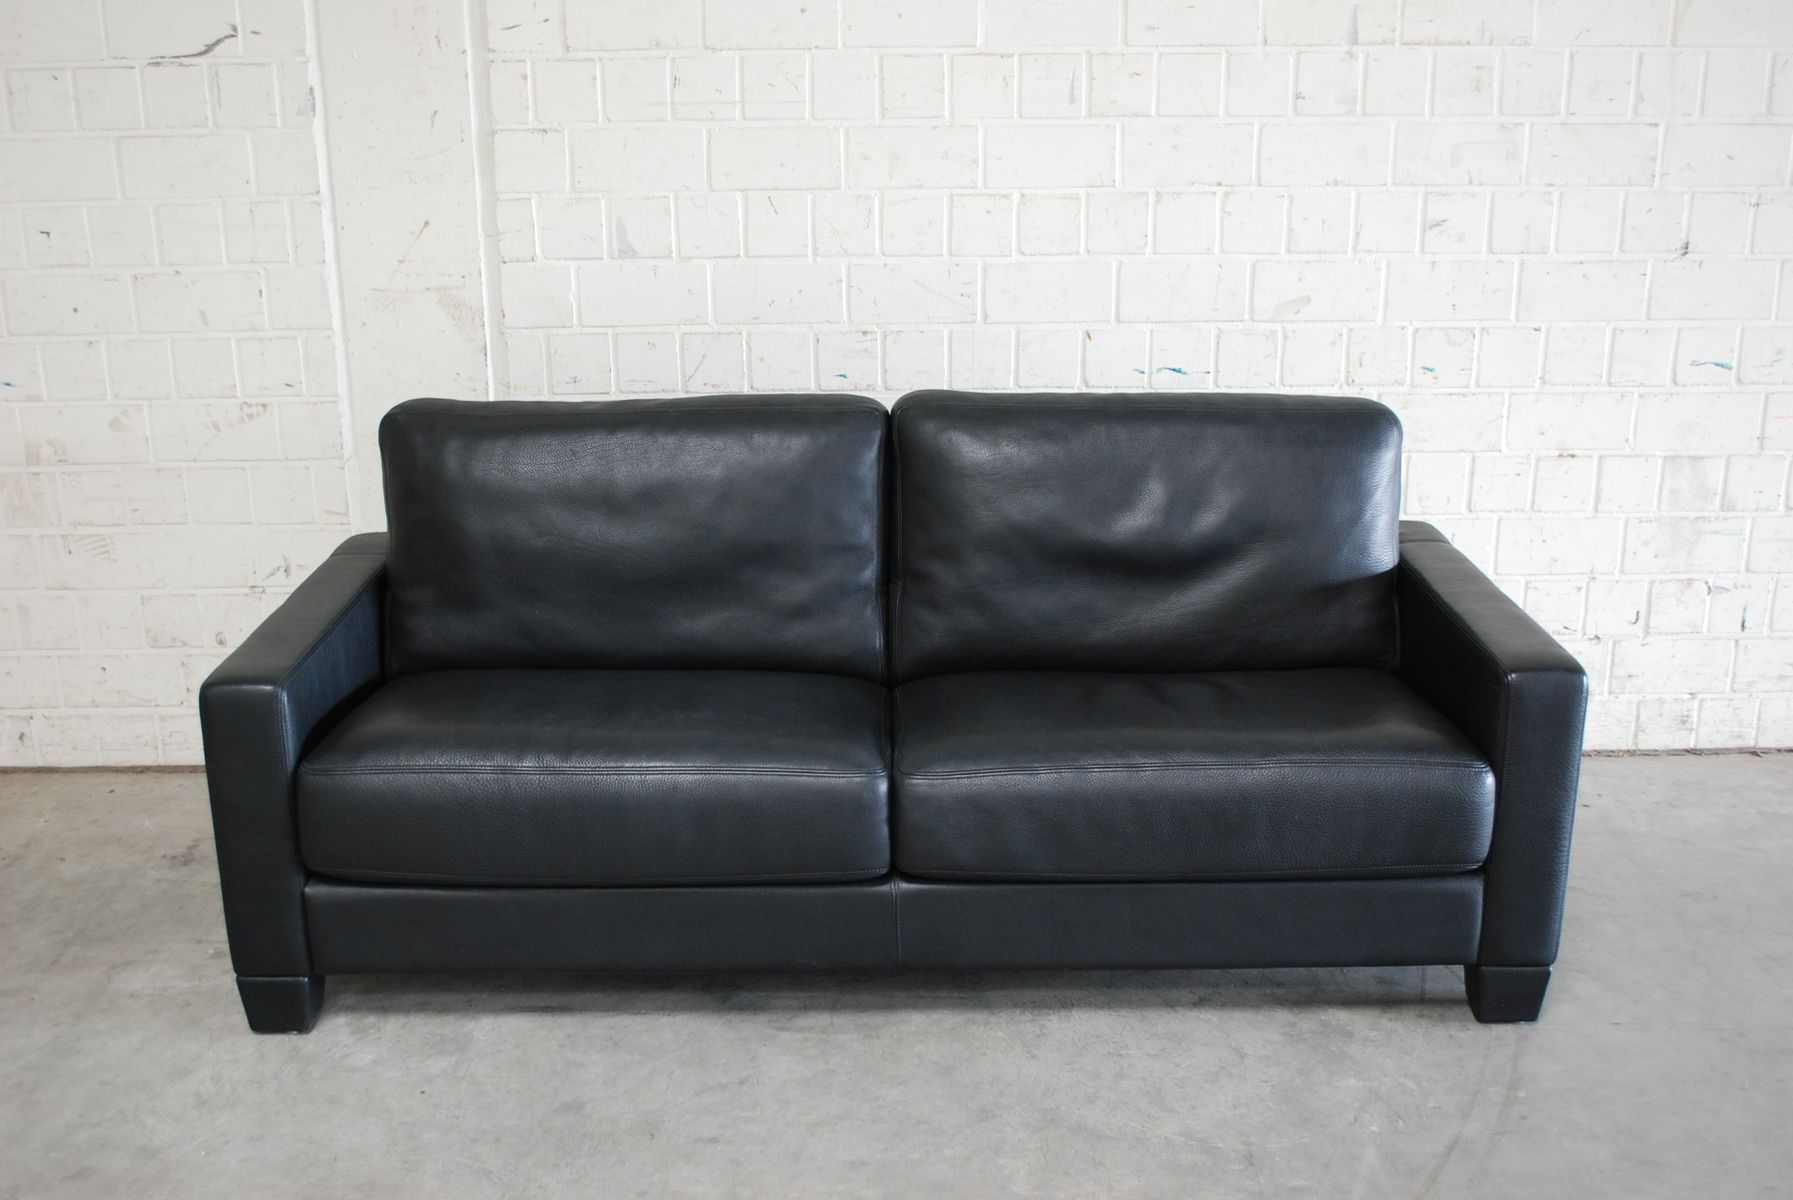 Vintage Swiss DS 17 Black Leather Sofa from de Sede for sale at Pamono